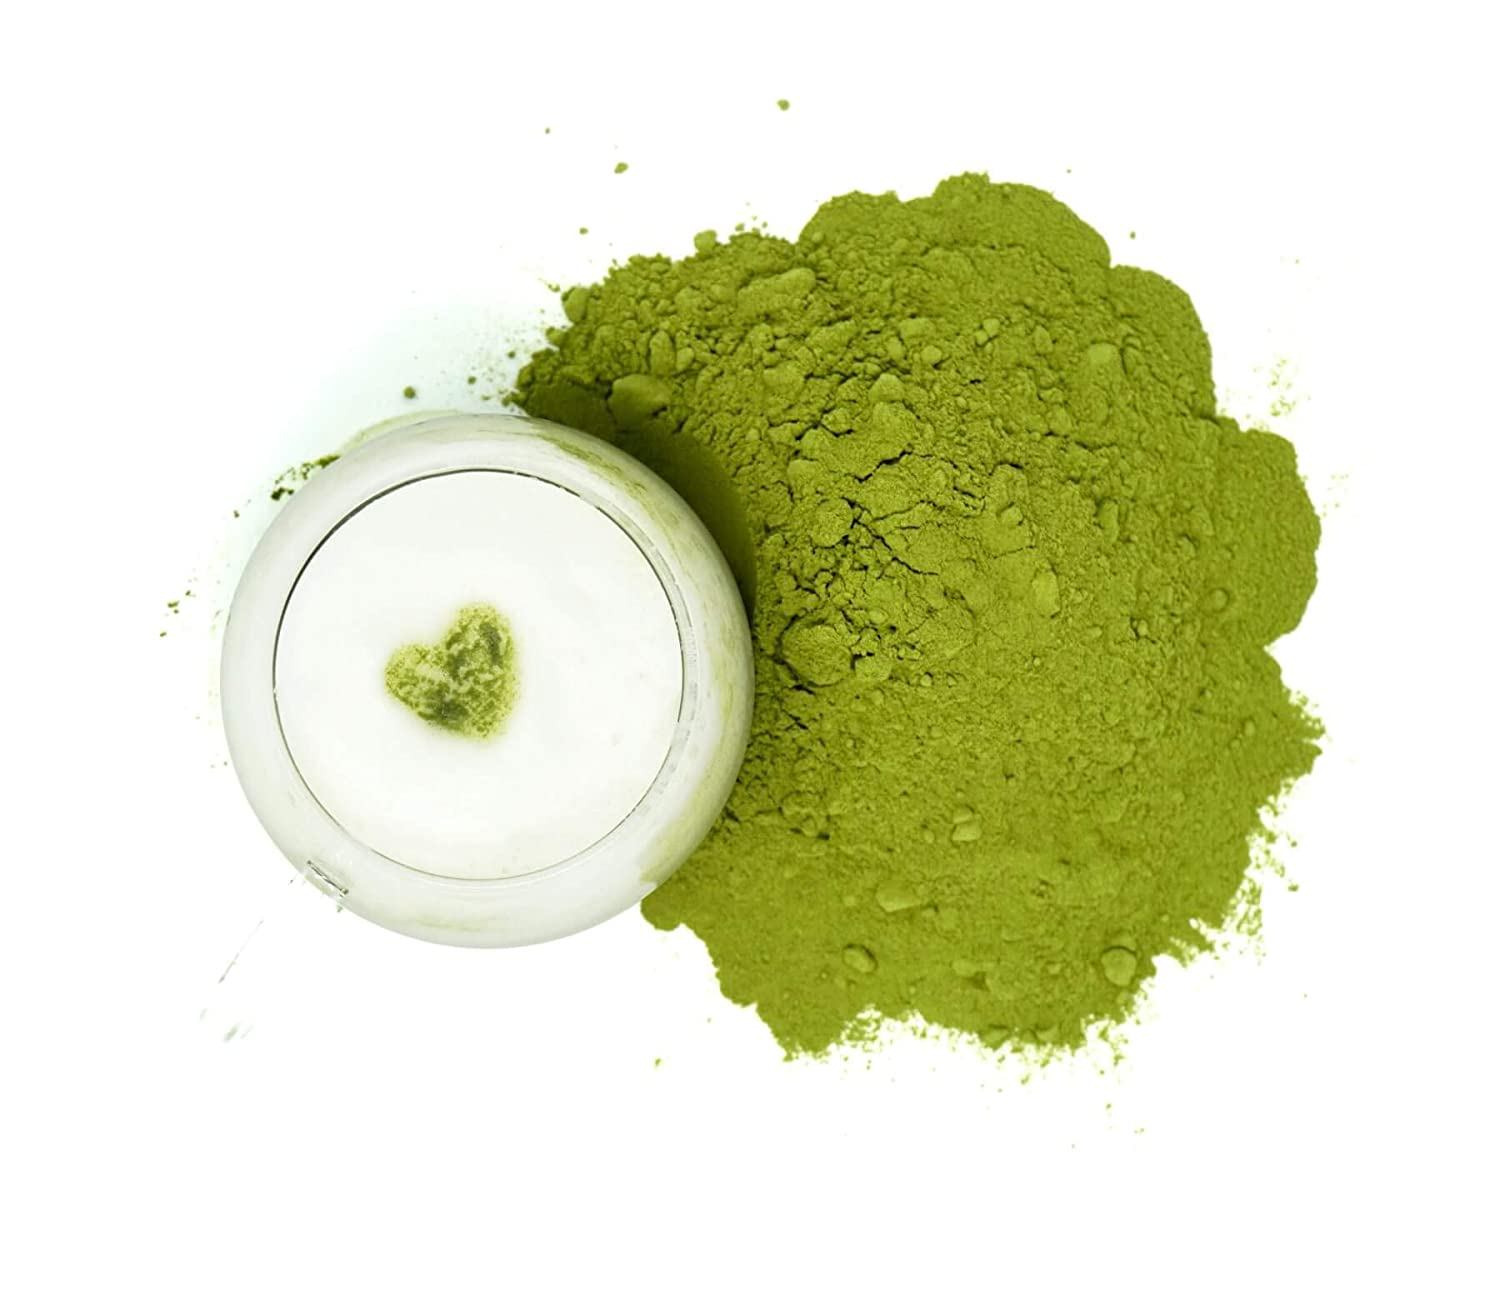 Spinach Powder from Germany - Premium Quality for Smoothies, Cooking, Baking and Natural Green Food Dye - Great Source of Ecdysterone for Muscle Growth - Net weight 1.76 Ounce / 50 Gram